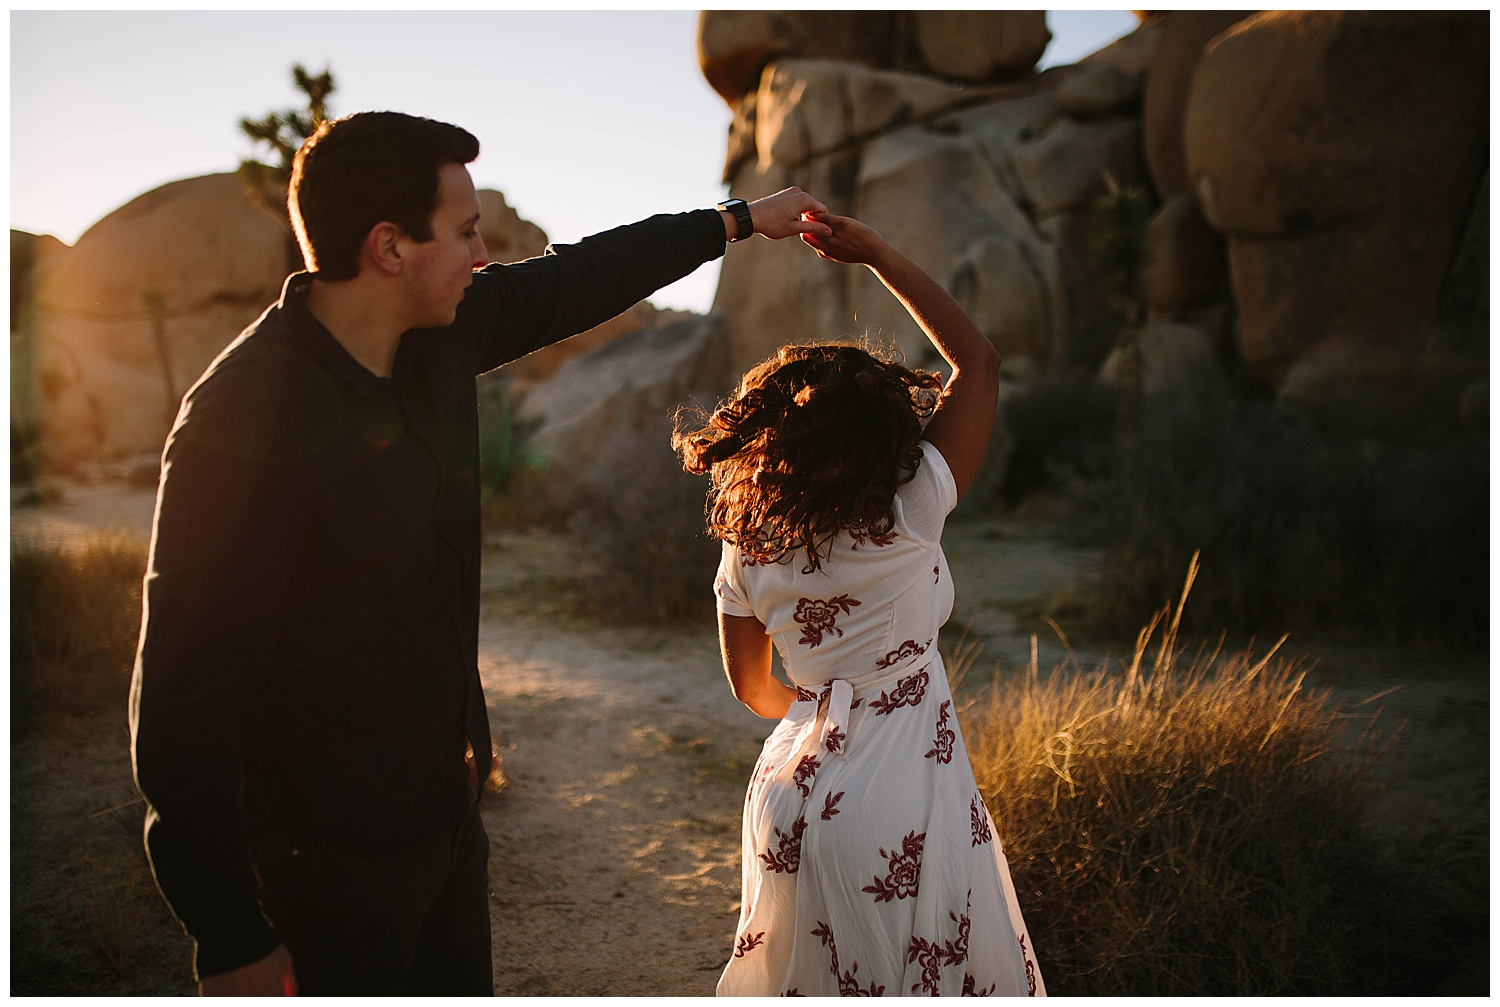 la.lifestyle.photography.session.engaged.malibu.joshuatree.kendralynnephotography-58.jpg